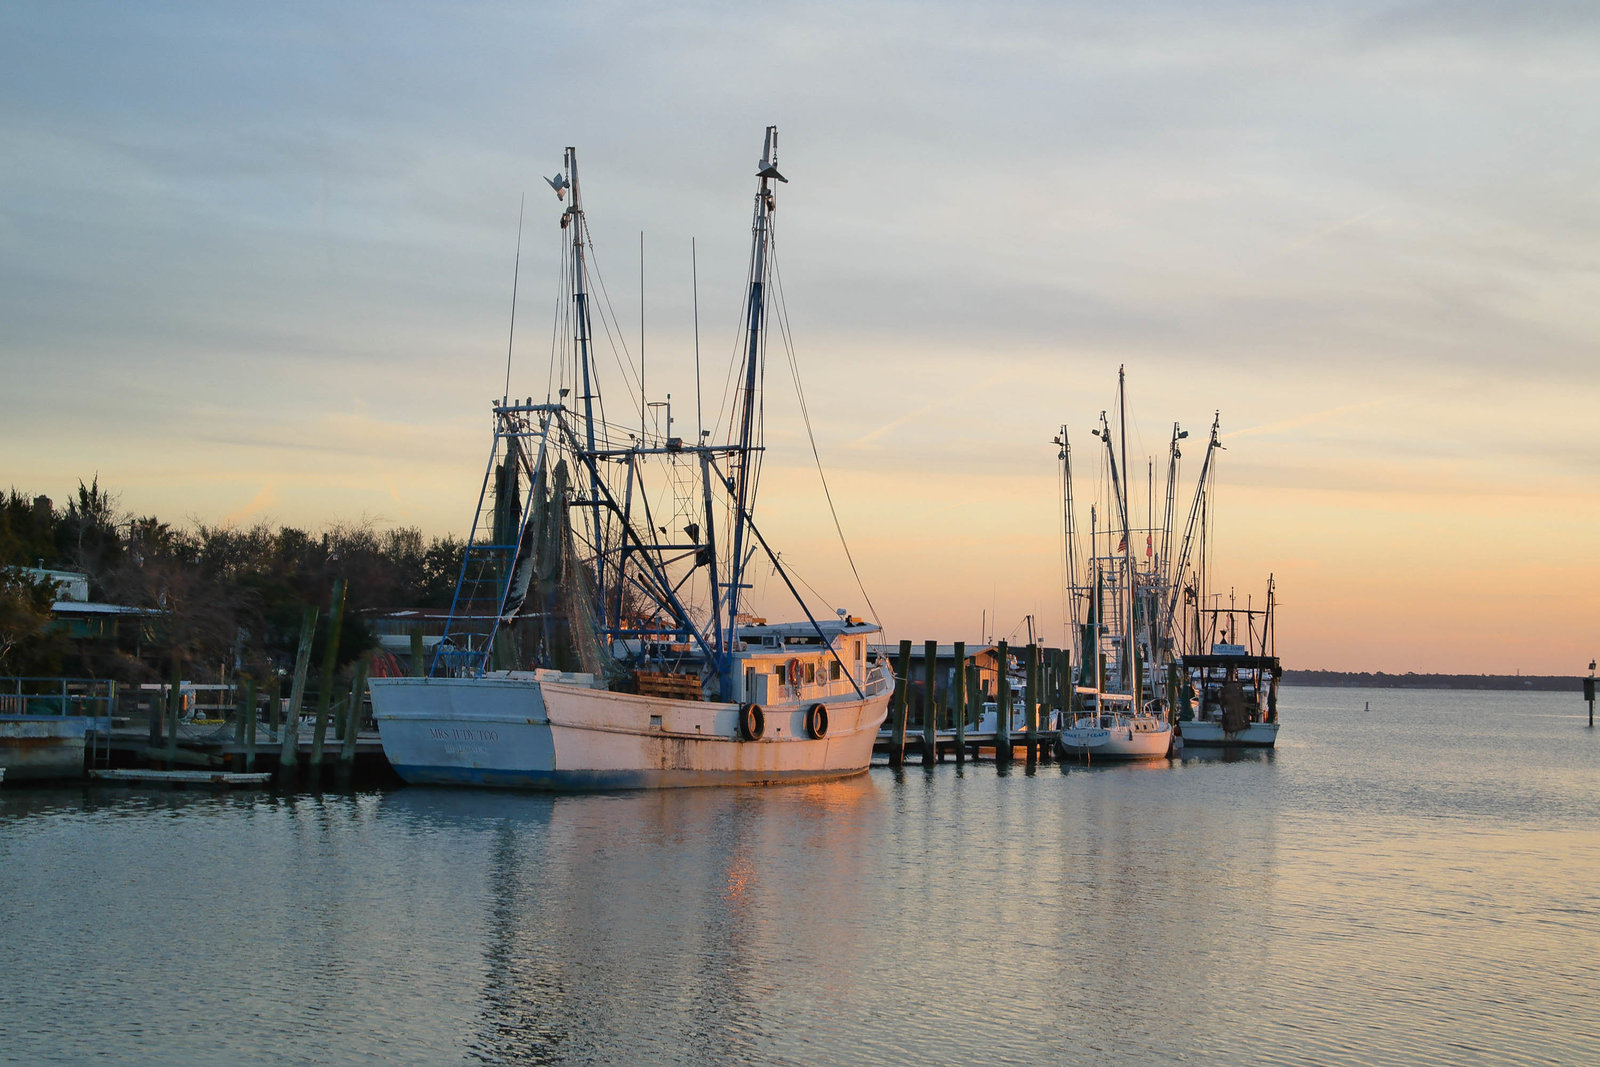 boat-shem-creek-sunset-charleston-sc-kate-timbers-photography-1039